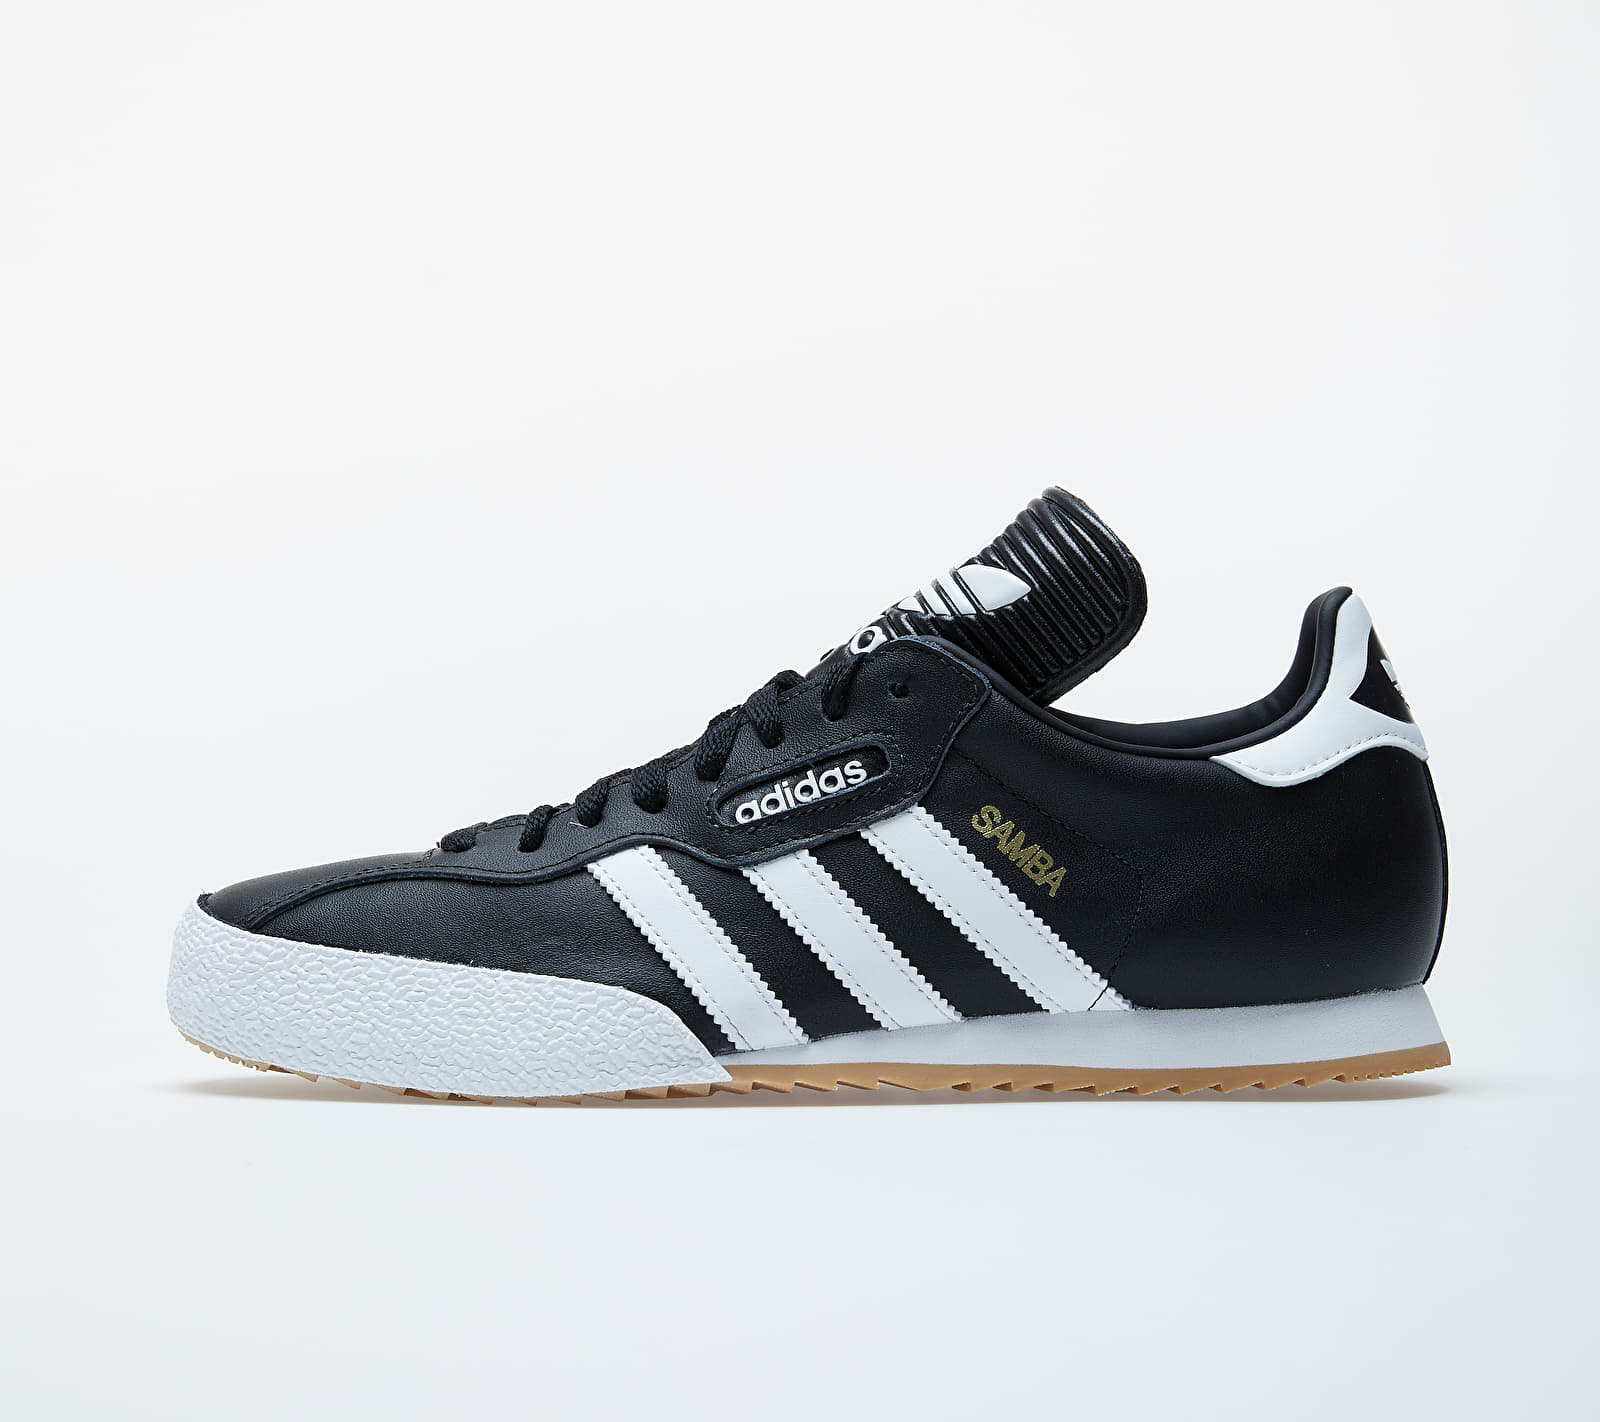 adidas Samba Super Black/ Run White 019099